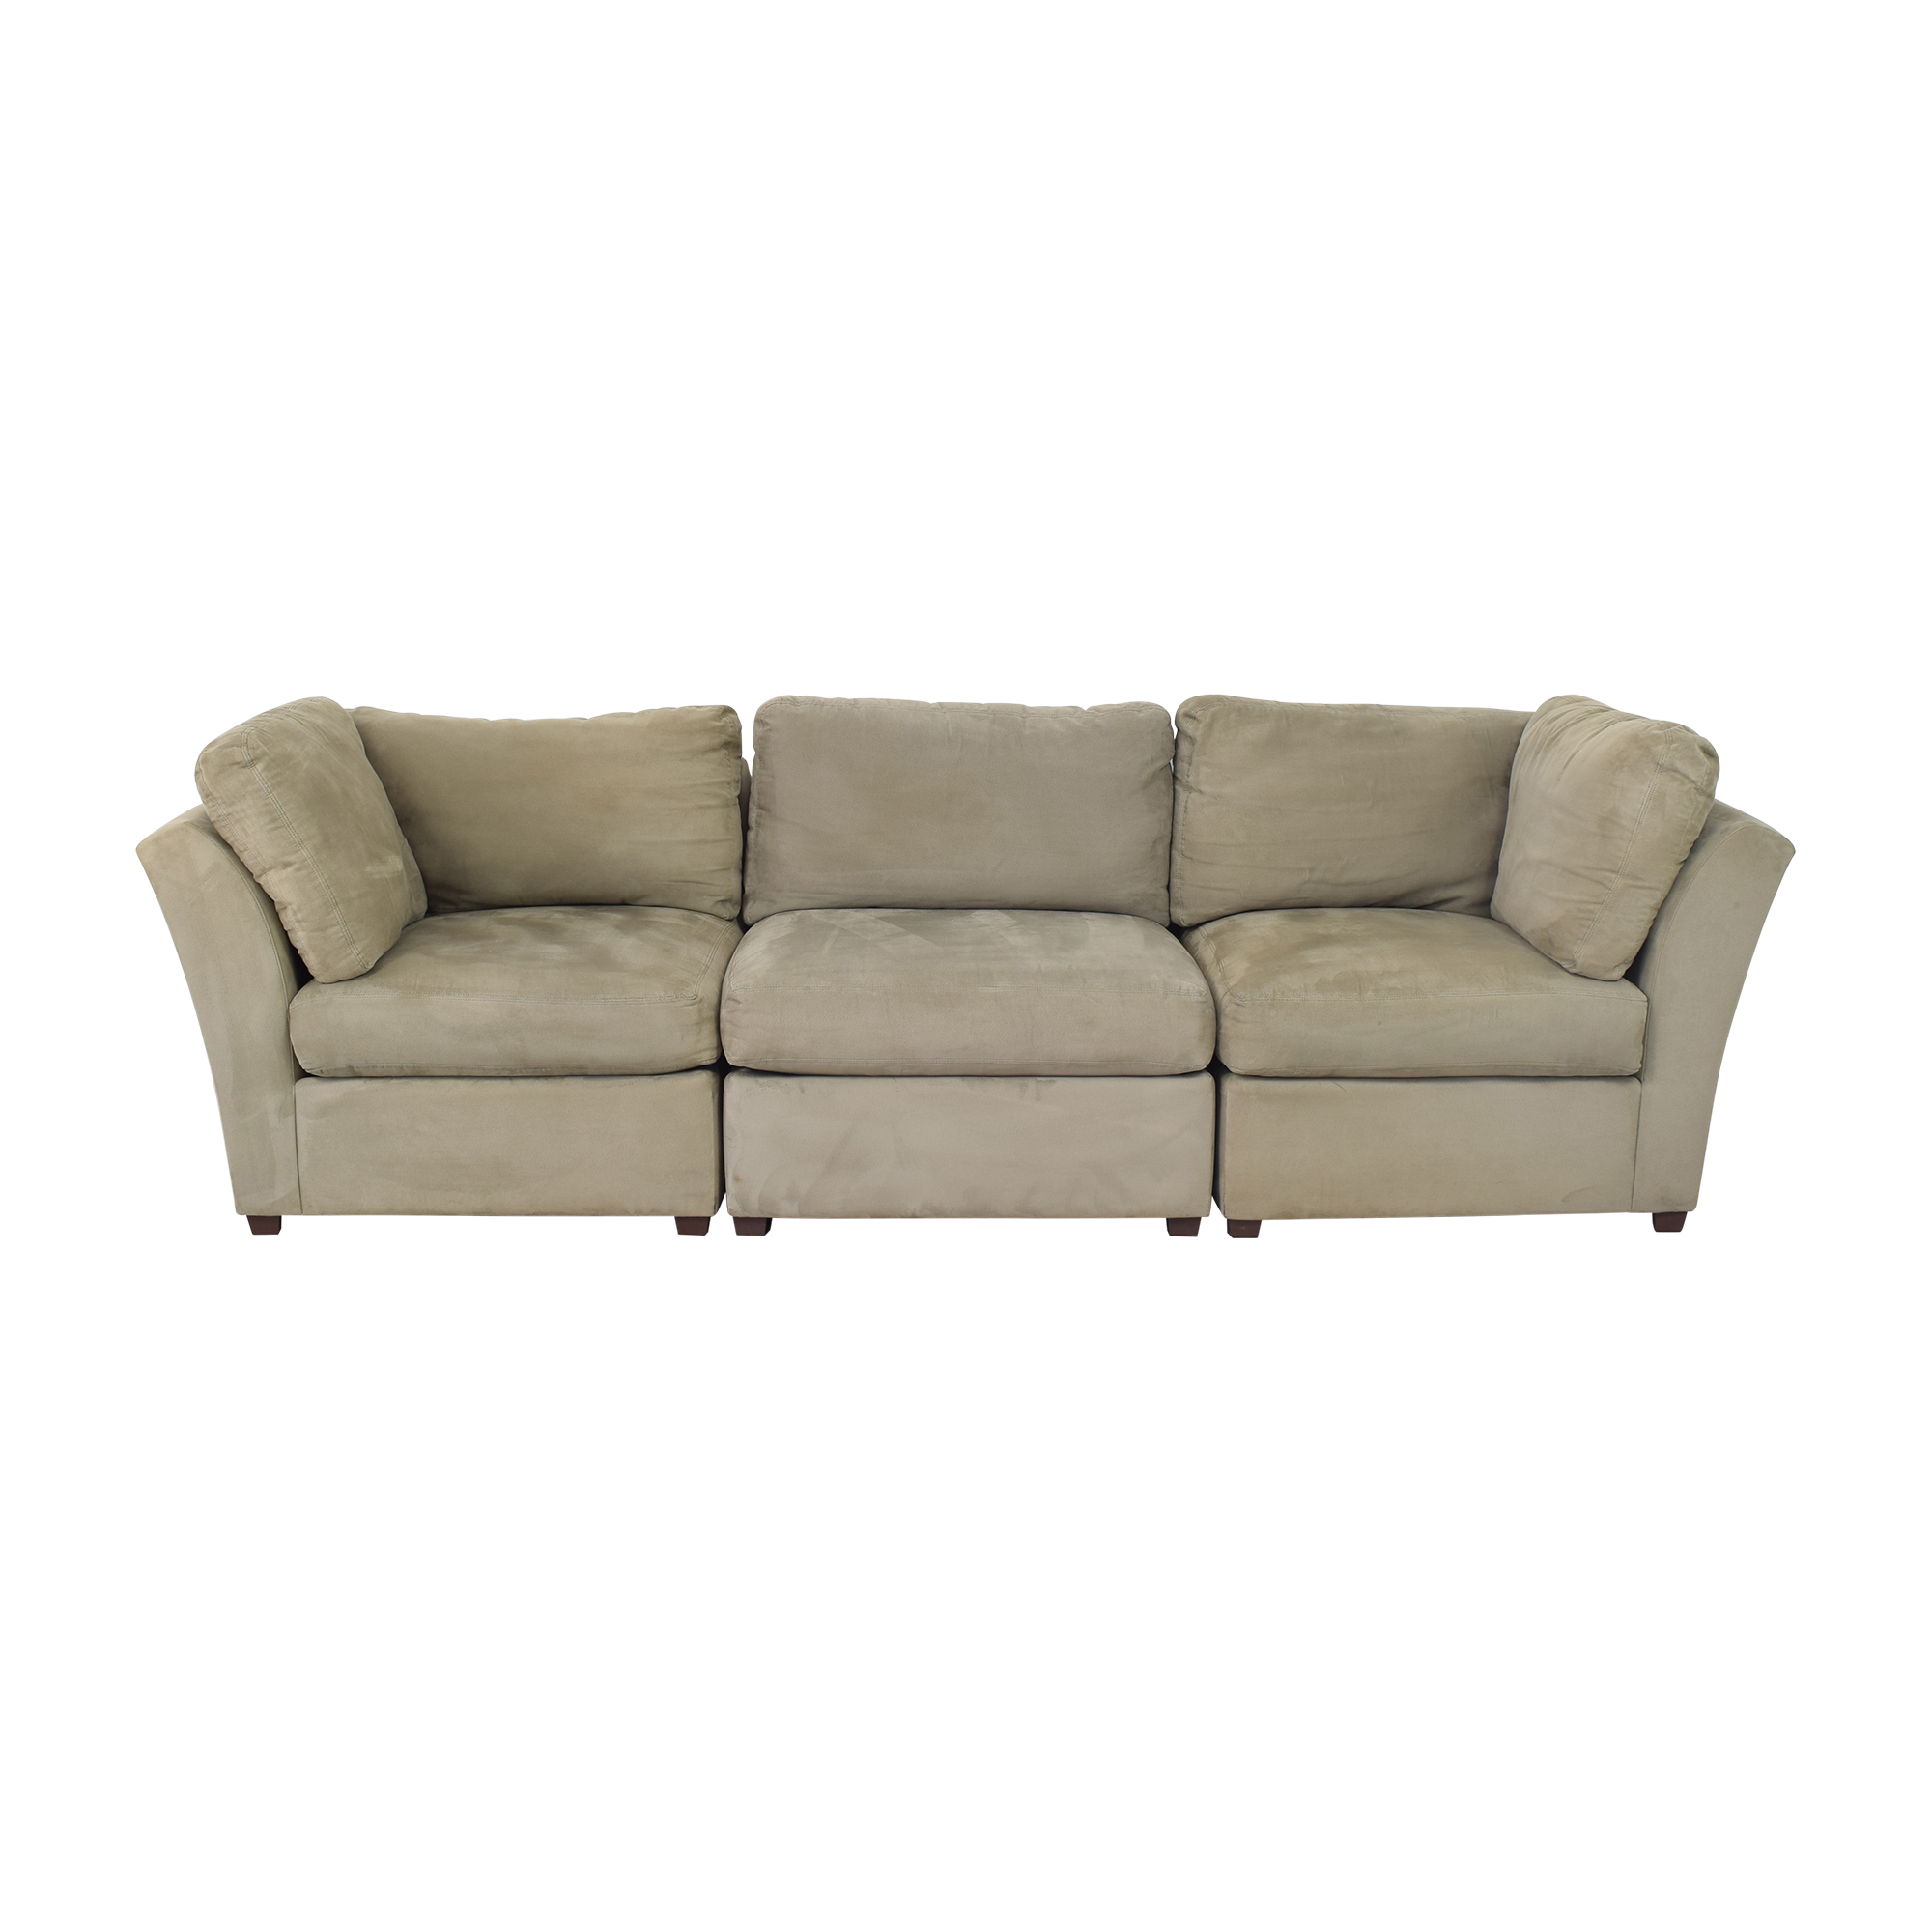 shop Raymour & Flanigan Modular Sofa Raymour & Flanigan